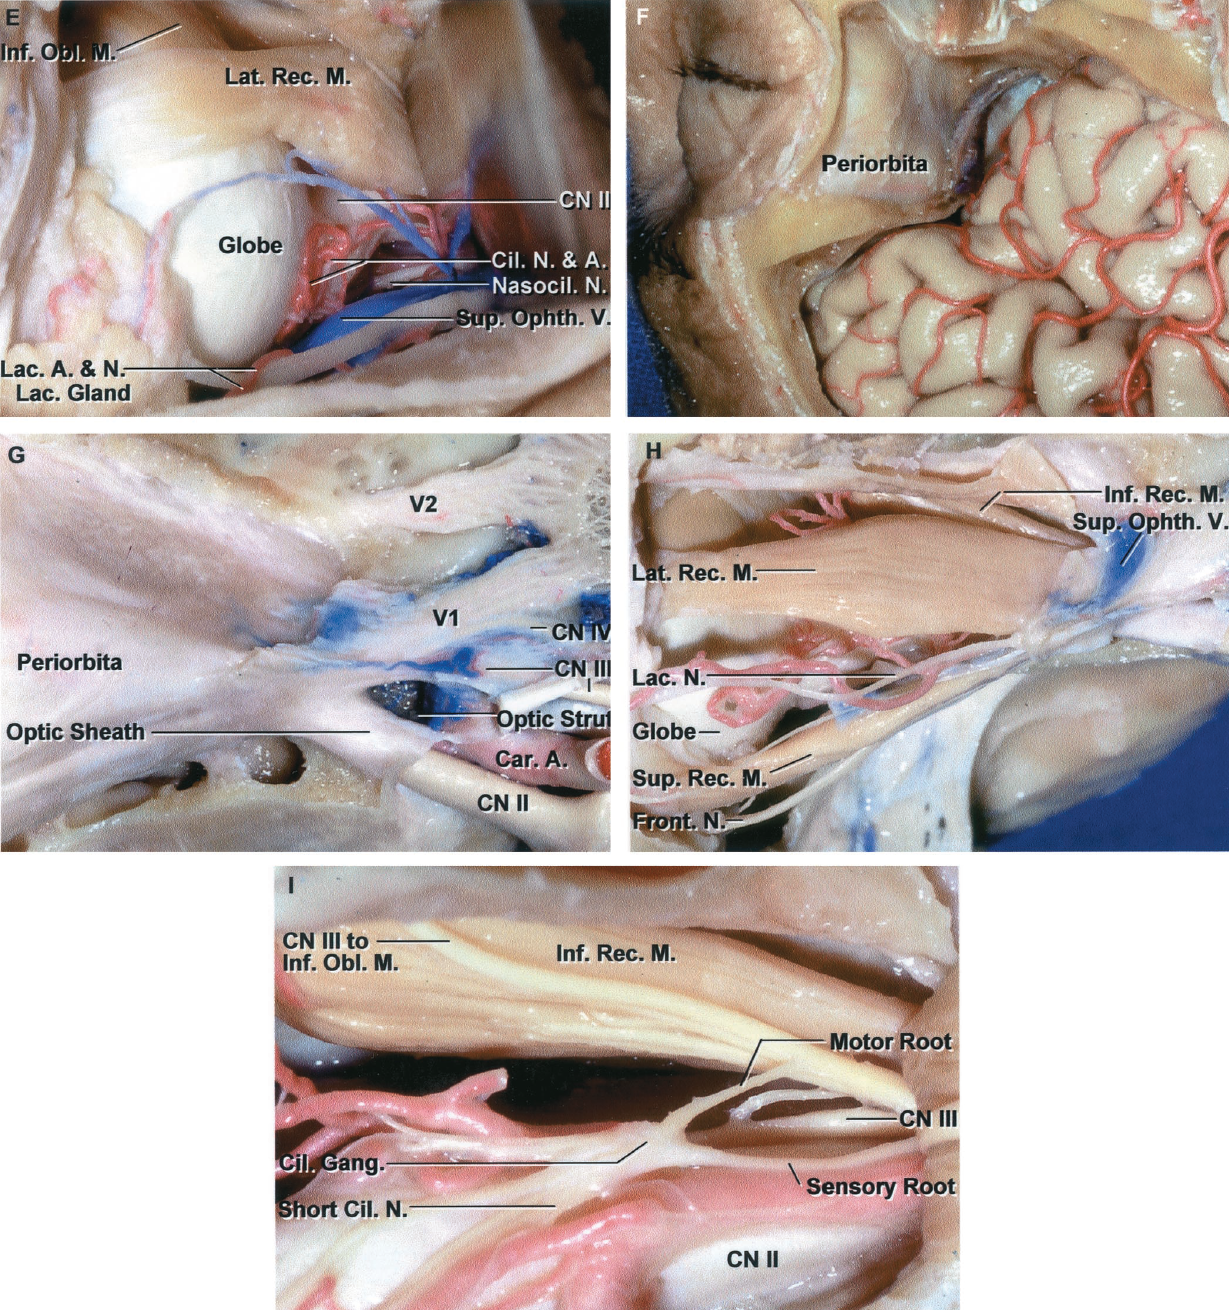 FIGURE 7.11. E-I. Lateral orbital approach. E, the orbital fat has been removed to expose the optic nerve and insertion of the lateral rectus and inferior oblique muscles on the globe. The superior ophthalmic vein, the nasociliary nerve, and the lacrimal and ciliary arteries and nerves are exposed above the lateral rectus muscle. F, combining the lateral orbital exposure with a frontotemporal craniotomy permits exposure of the superior orbital fissure, anterior cavernous sinus, and the frontal and temporal lobes adjoining the sylvian fissure. The lateral orbital wall has been removed to expose the periorbita. G, the combined craniotomy and lateral orbitotomy exposures include the anterior part of cavernous sinus, the superior orbital fissure, and the lateral orbit. The anterior clinoid process and a portion of the optic strut have been removed. The bone around the optic canal has been removed to expose the optic sheath. H, the periorbita has been opened to expose the lateral rectus muscle. The lacrimal and frontal nerves course through the lateral part of the superior orbital fissure. The superior ophthalmic vein courses along the lateral margin of the annular tendon. I, the lateral rectus muscle has been reflected posteriorly. The ciliary ganglion is located on the lateral side of the ophthalmic artery and optic nerves. The abducens nerve enters the medial side of the lateral rectus muscle. The motor root of the ciliary ganglion arises from the branch of the inferior oculomotor division to the inferior oblique muscle. The sensory root of the ciliary ganglion arises from the nasociliary. The ciliary ganglion gives rise to short ciliary nerves. A., artery; Car., carotid; Cil., ciliary; CN, cranial nerve; Fiss., fissure; Front., frontal; Frontozygo., frontozygomatic; Gang., ganglion; Inf., inferior; Lac., lacrimal; Lat., lateral; Lig., ligament; M., muscle; N., nerve; Nasocil., nasociliary; Obl., oblique; Ophth., ophthalmic; Orb., orbital; Rec., rectus; Sup., superior